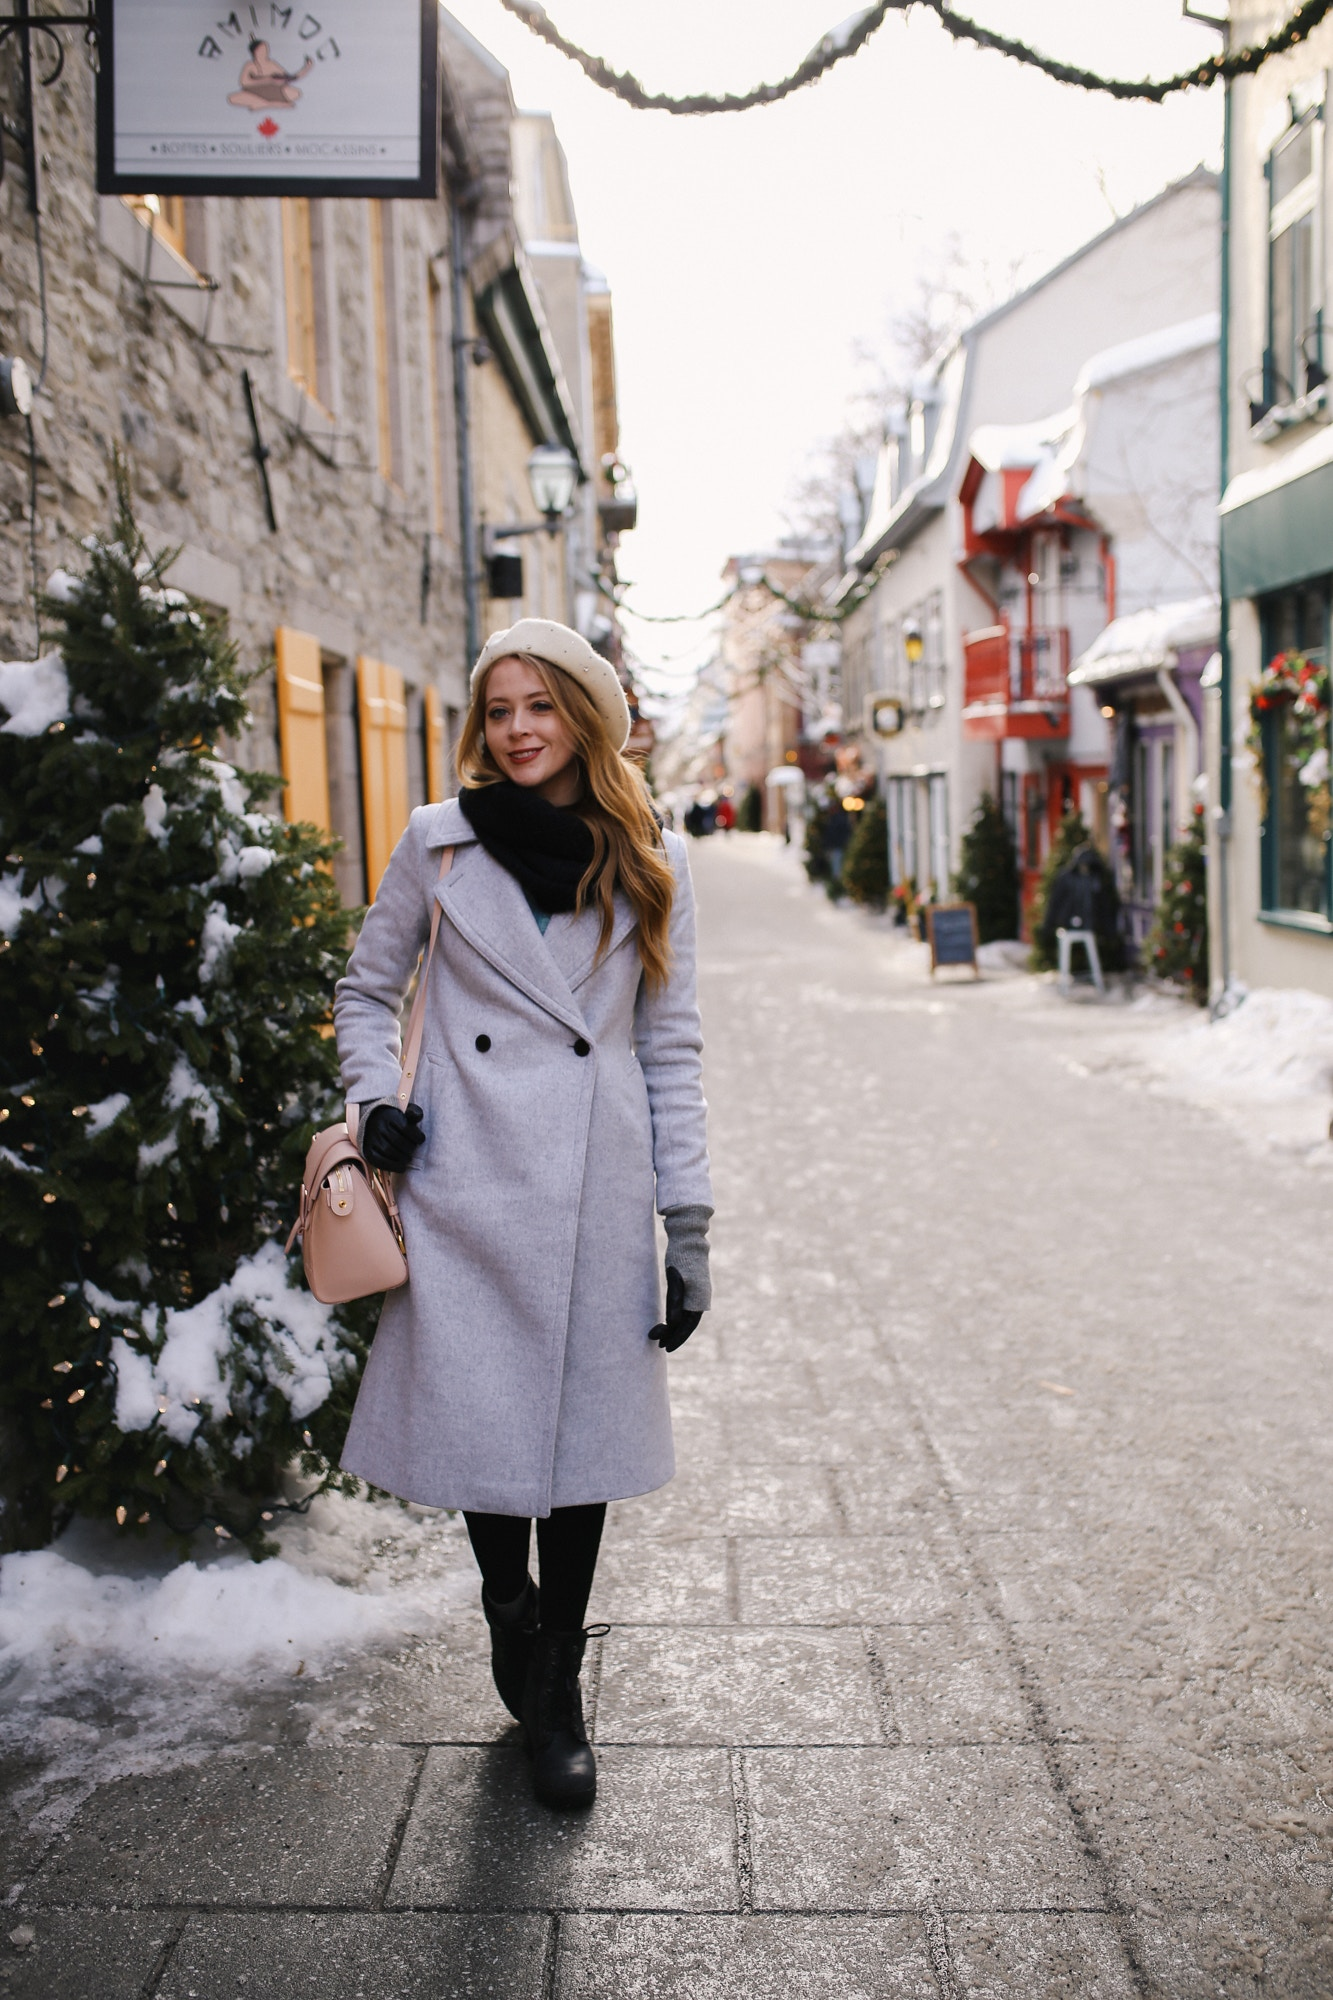 Exploring Quartier Petit Champlain in Old Quebec City - one of my top 10 things to do in Quebec City in a weekend in winter.